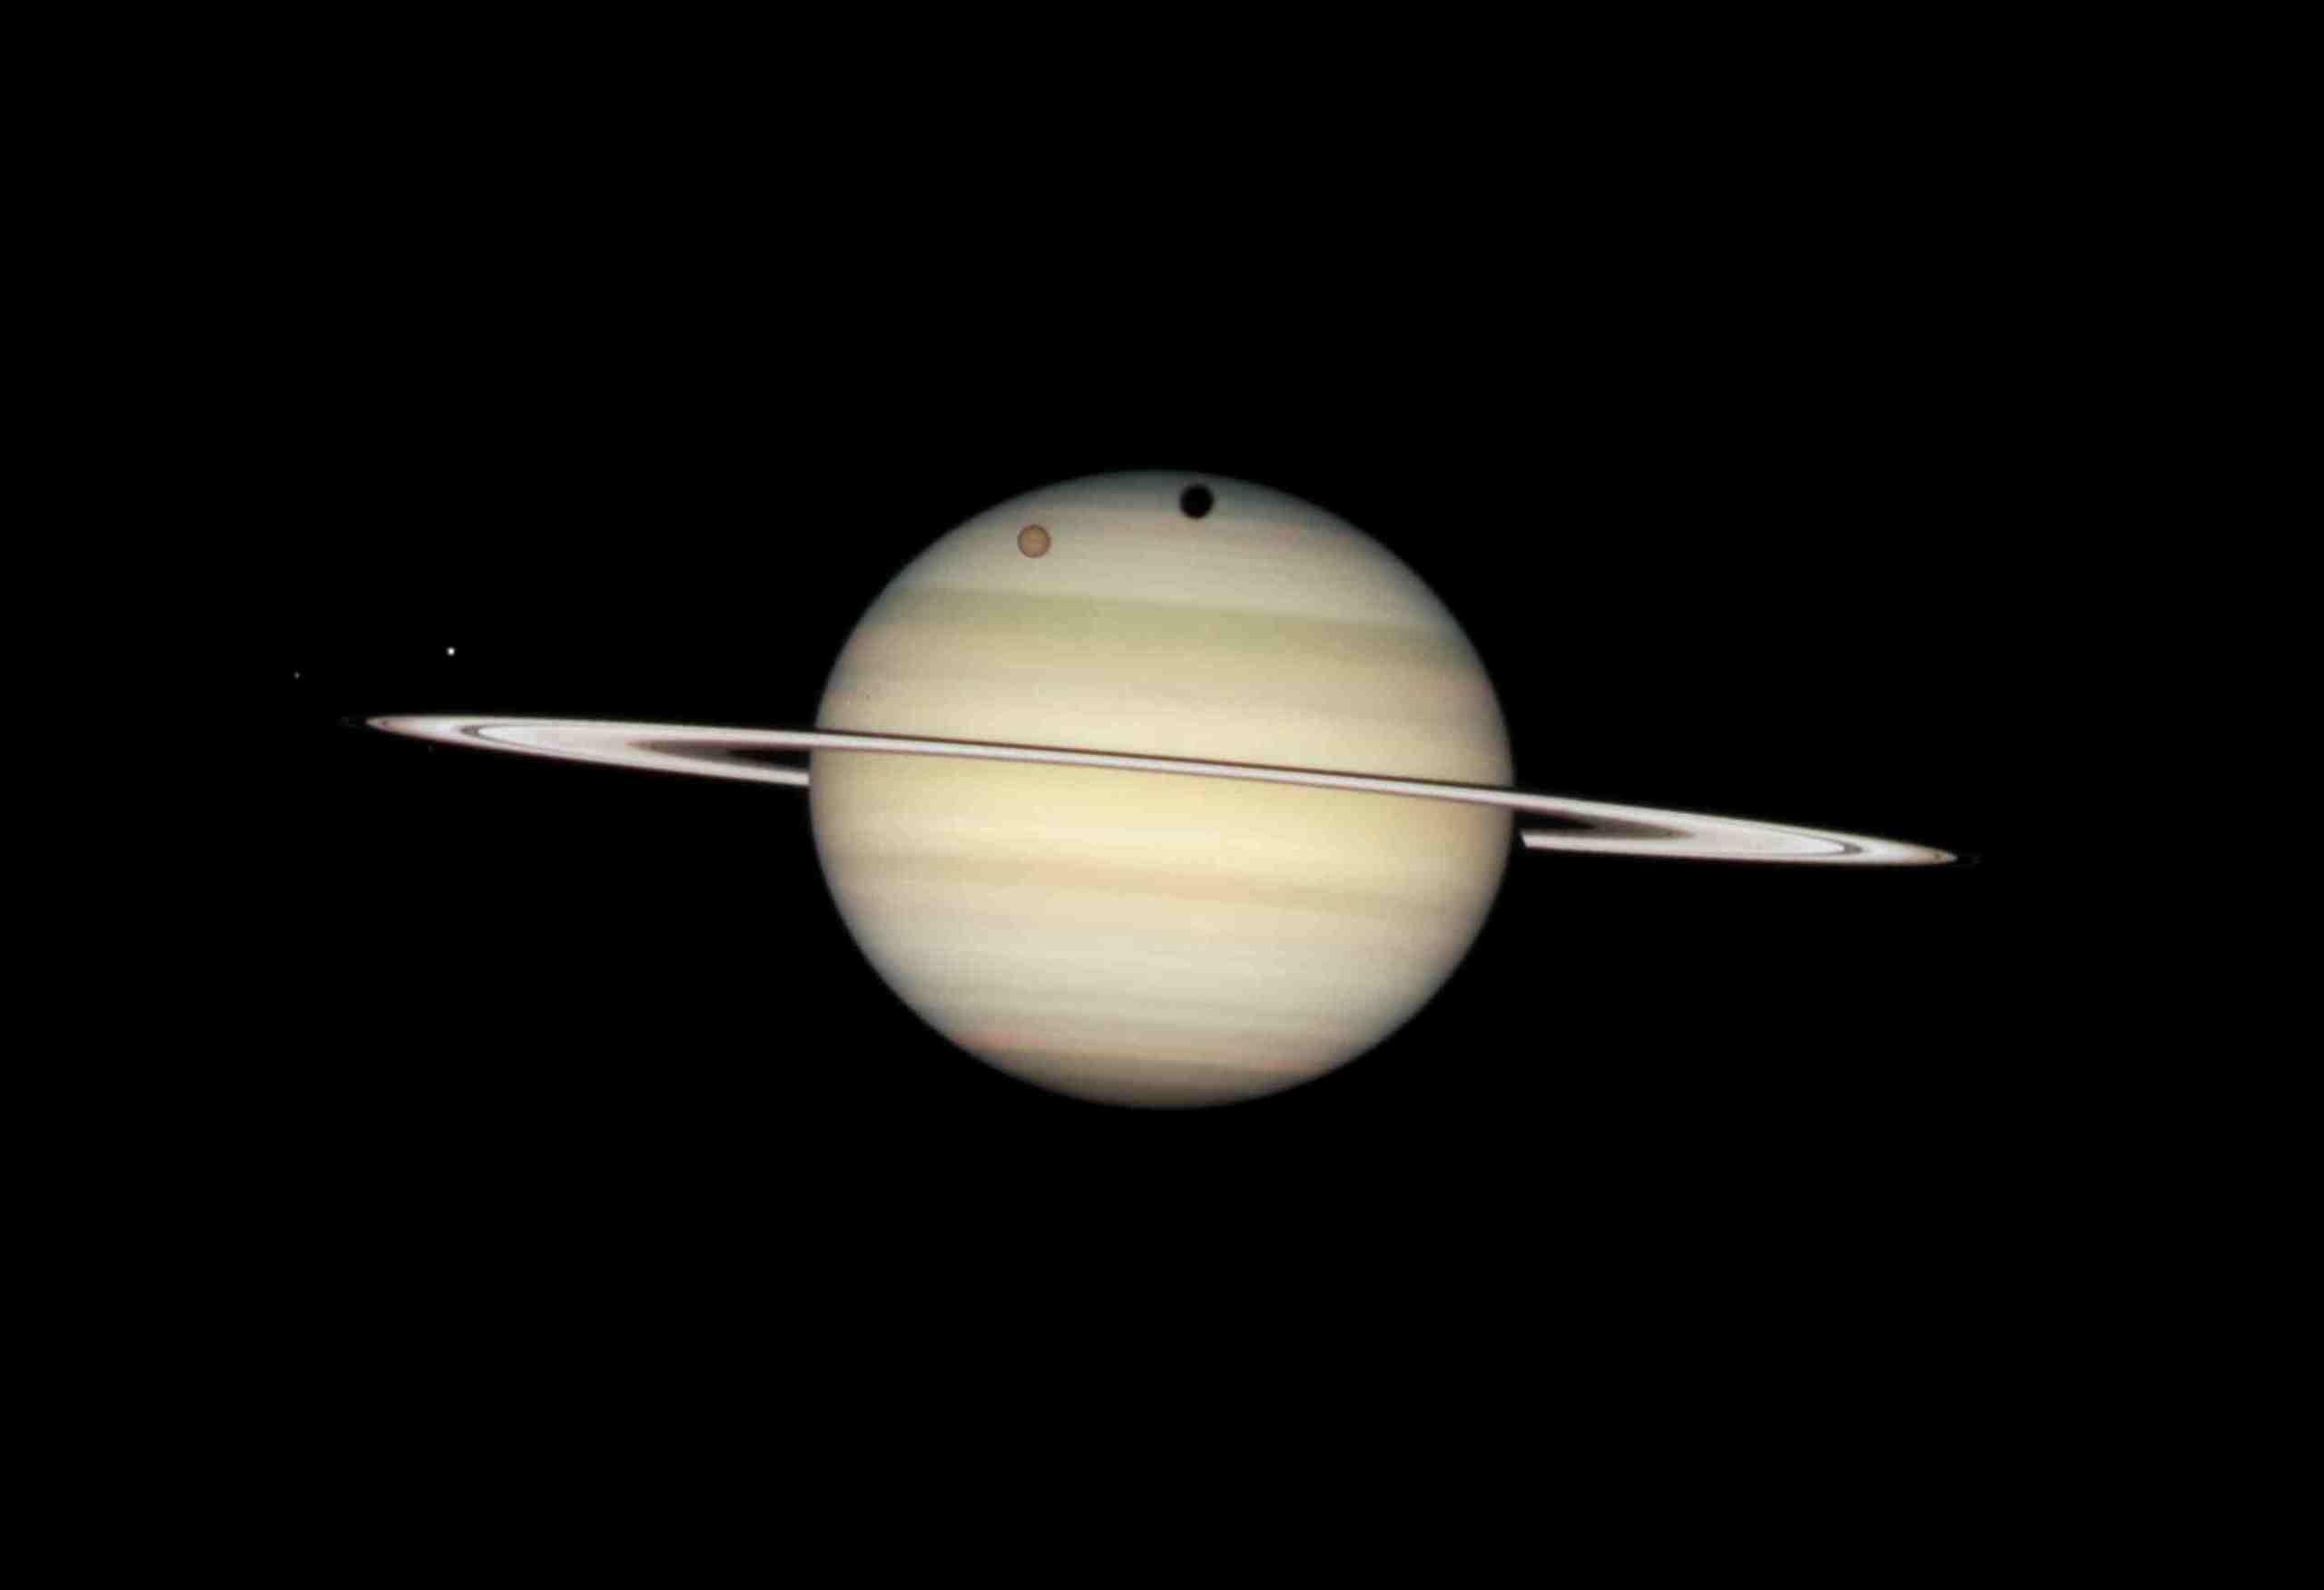 hubble images of saturn - photo #25